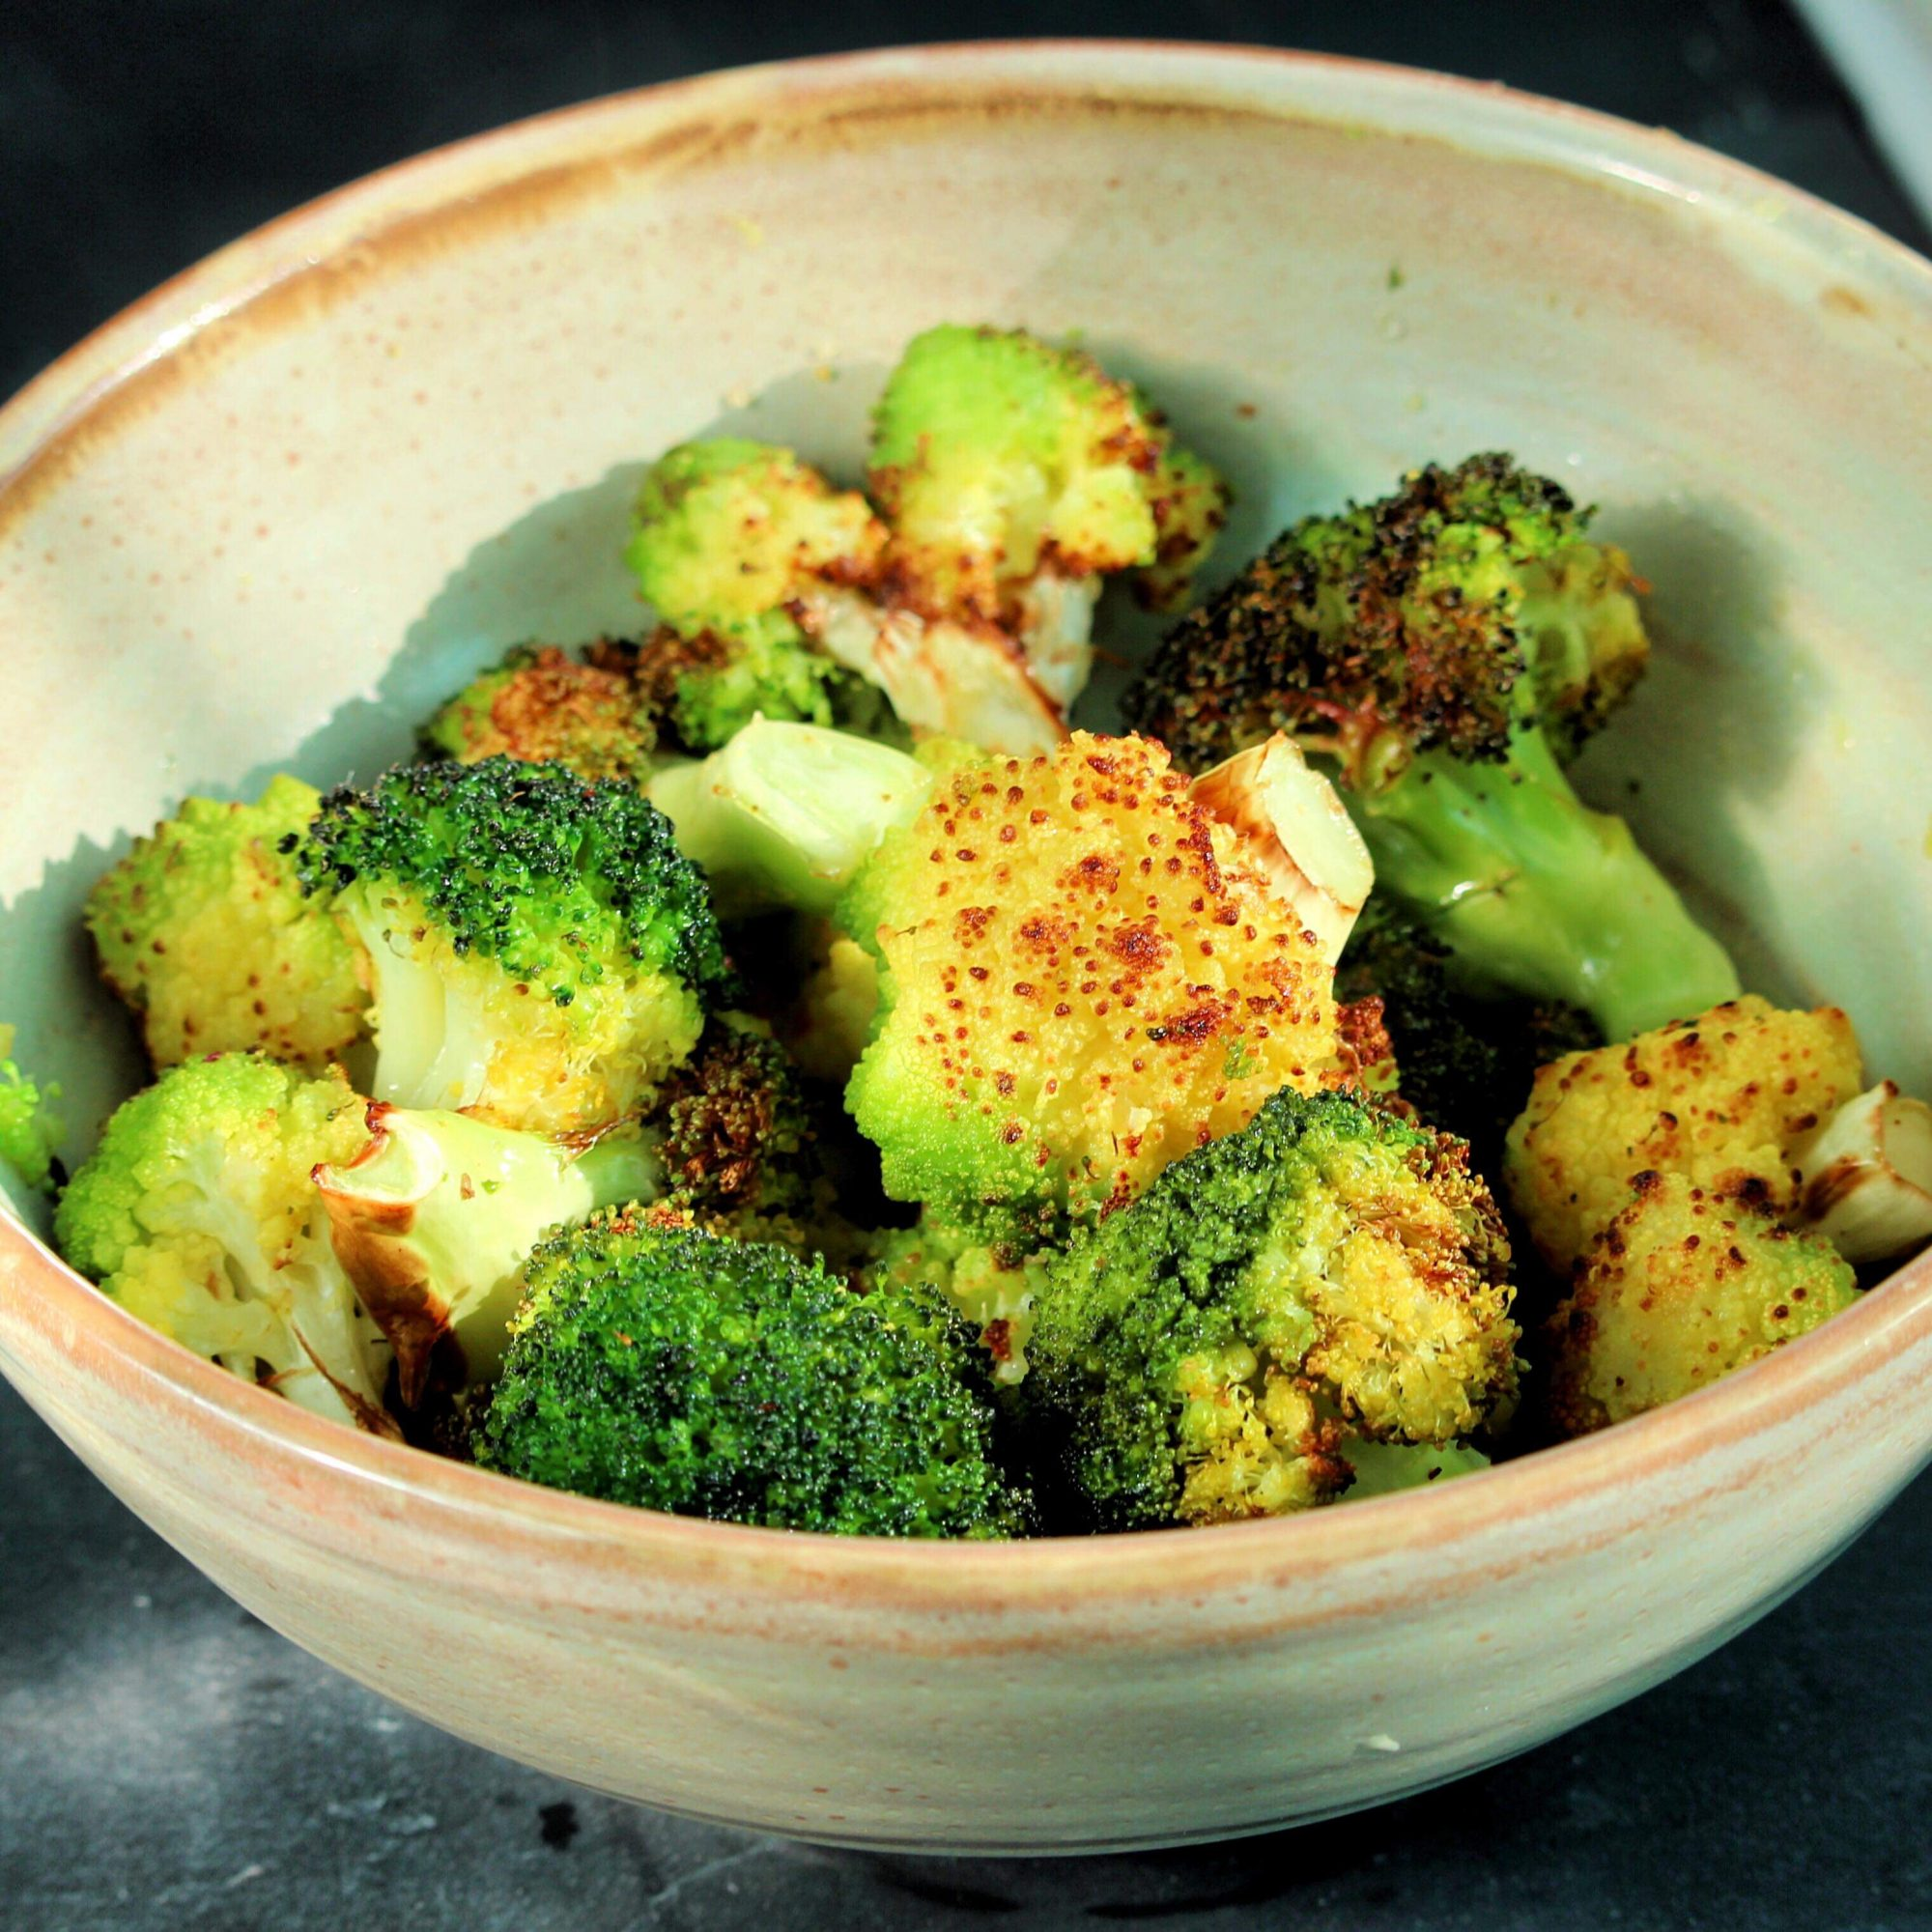 bowl of air-fried broccoli and cauliflower